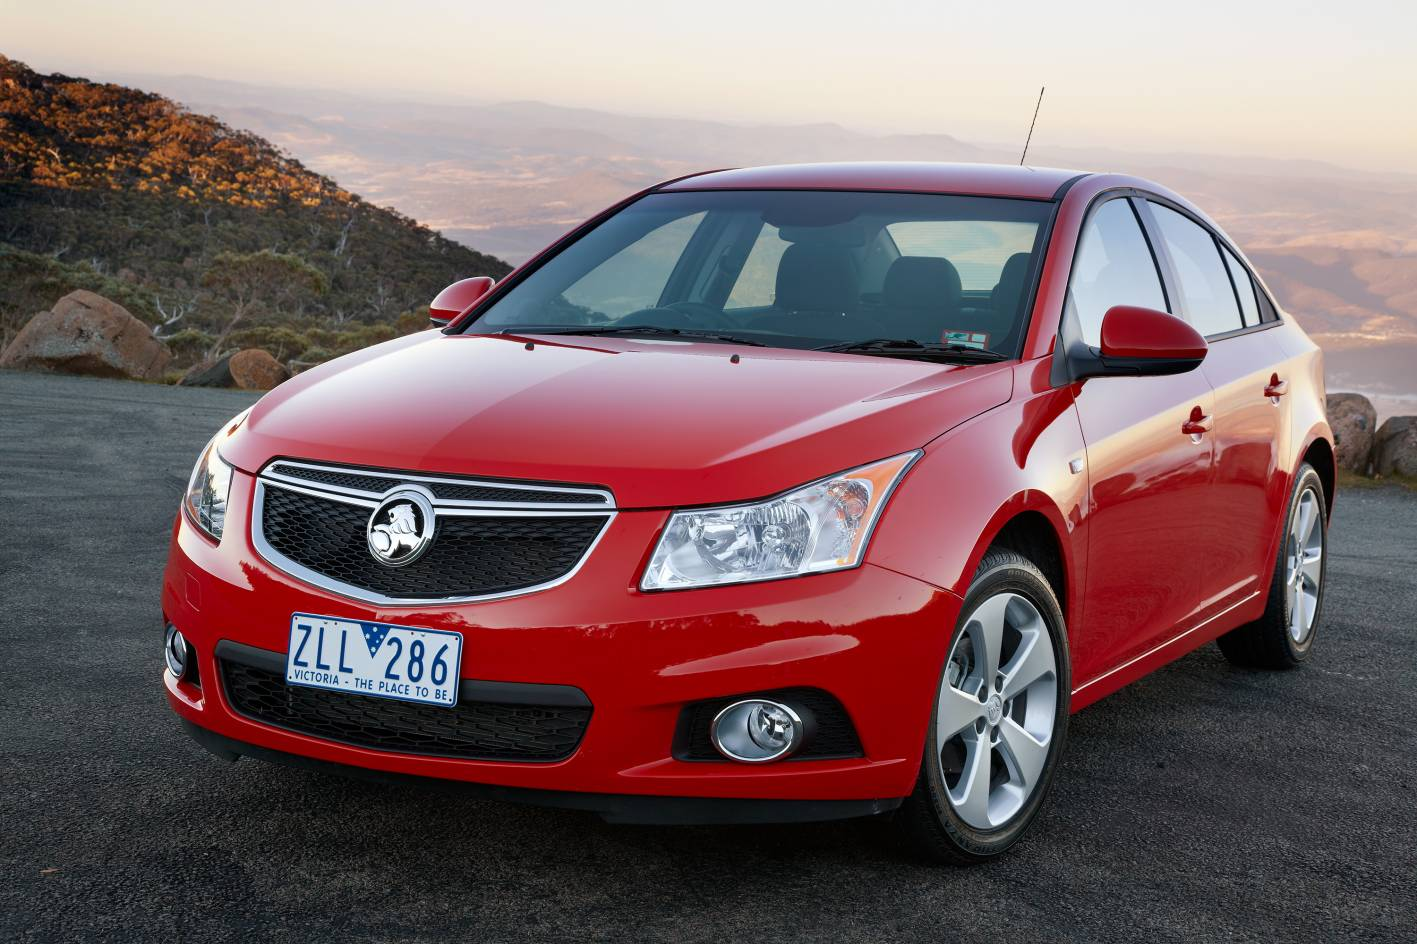 Holden Cruze - one of the worst cars on Australian roads. DON'T BUY!